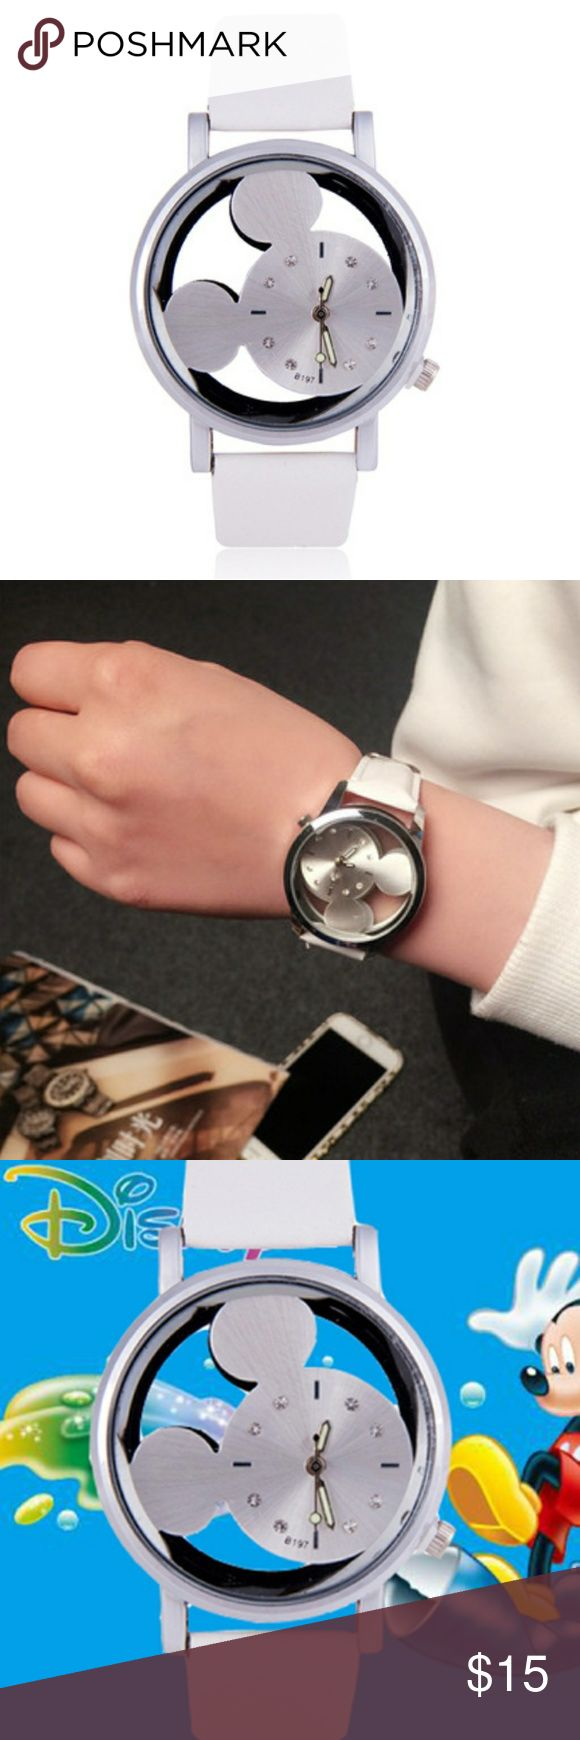 Women's Hollow Mickey Watch w/White Leather Band Women's Hollow Mickey Watch w/White Leather Band Accessories Watches